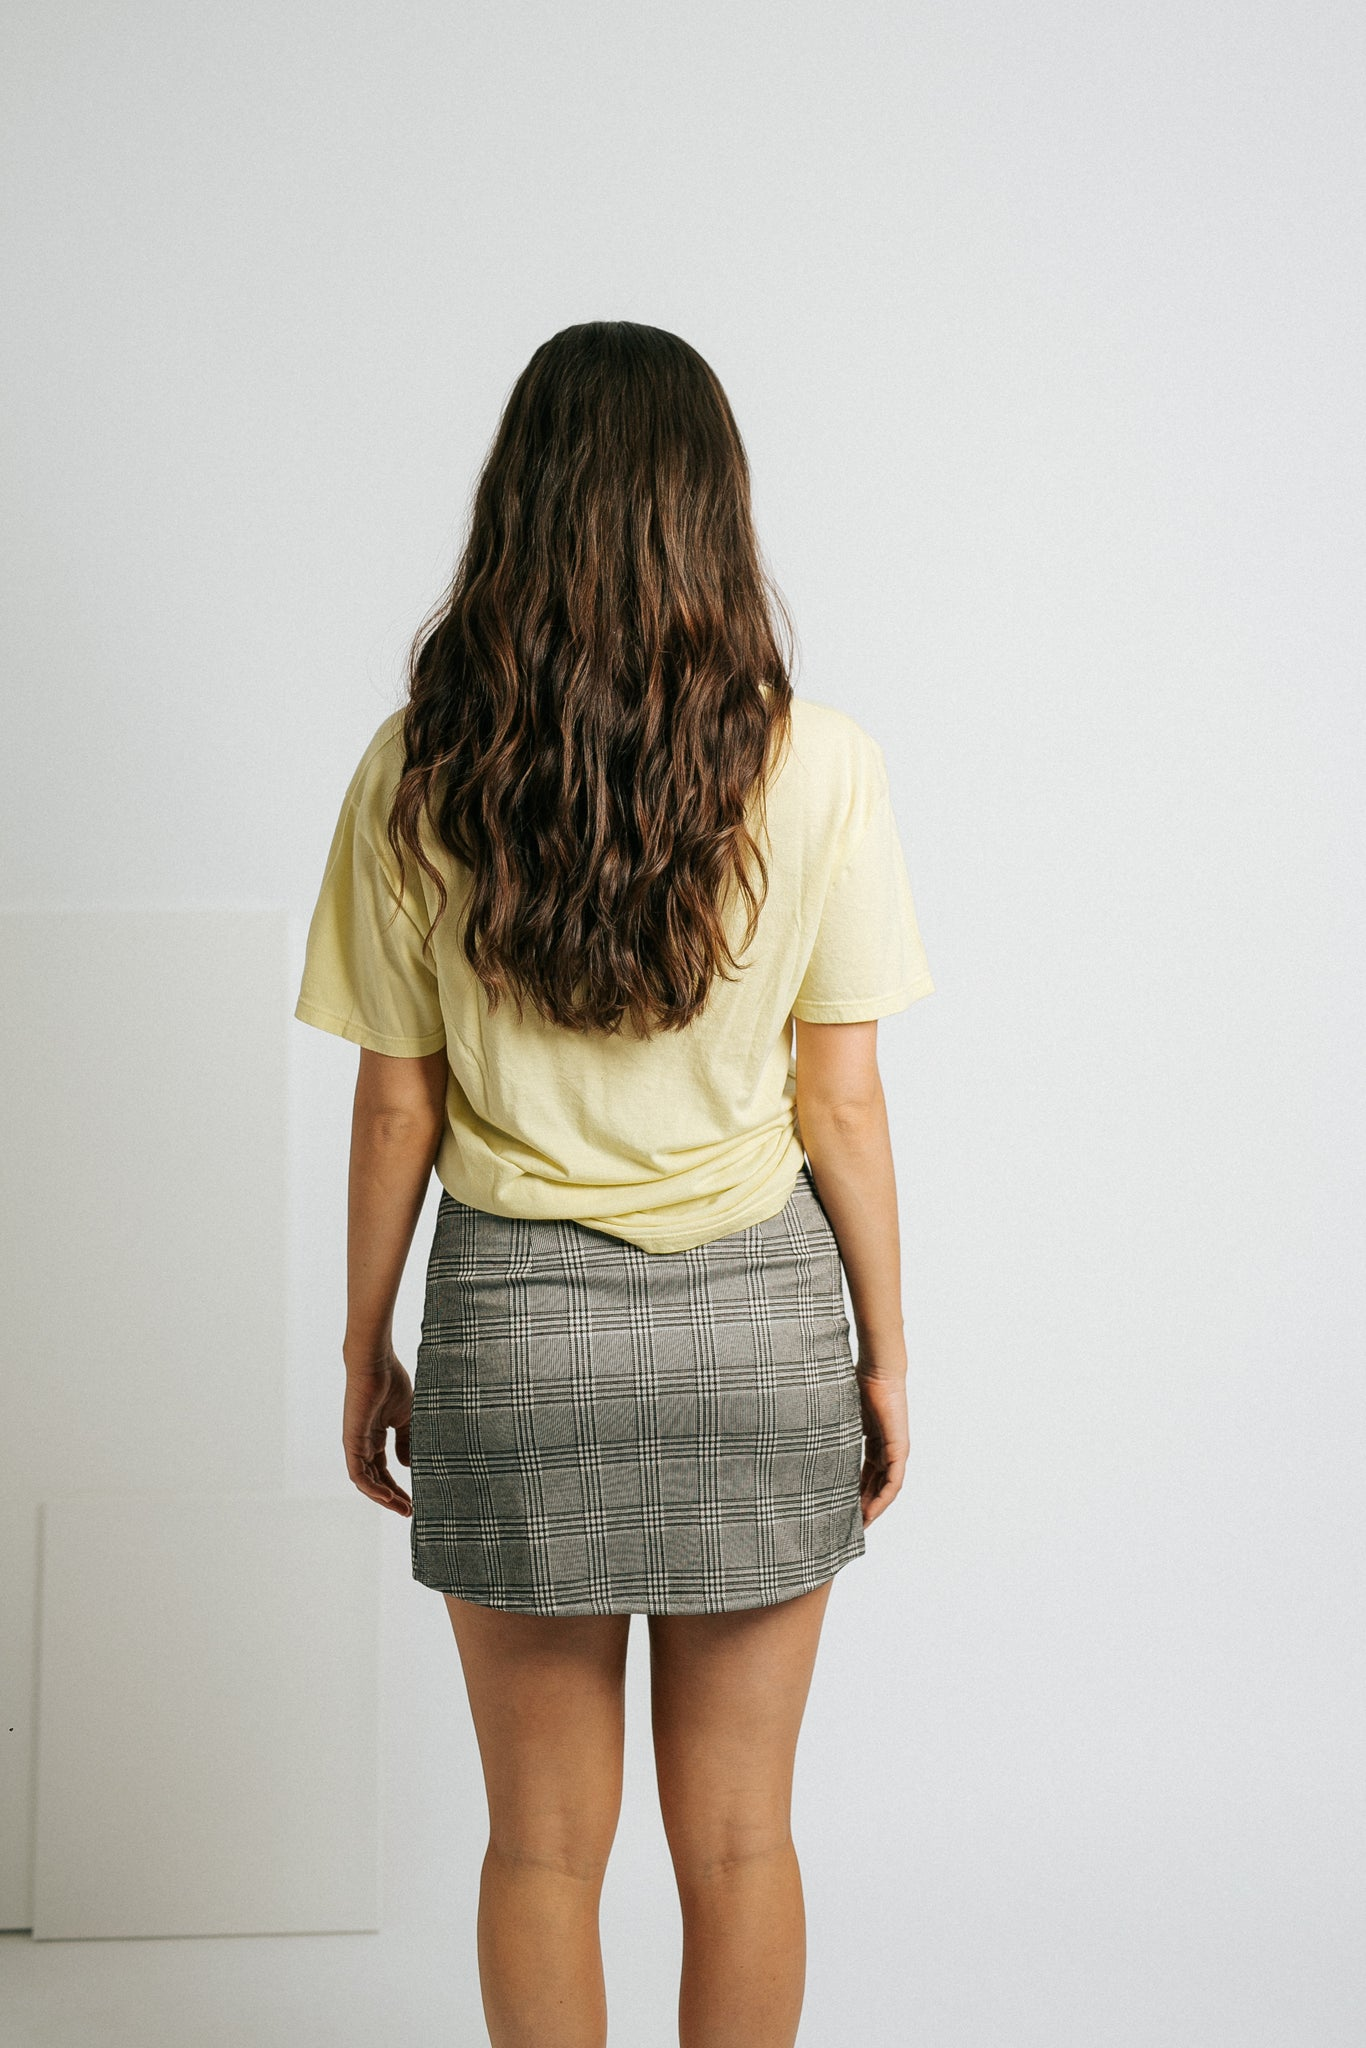 The Late May Skirt